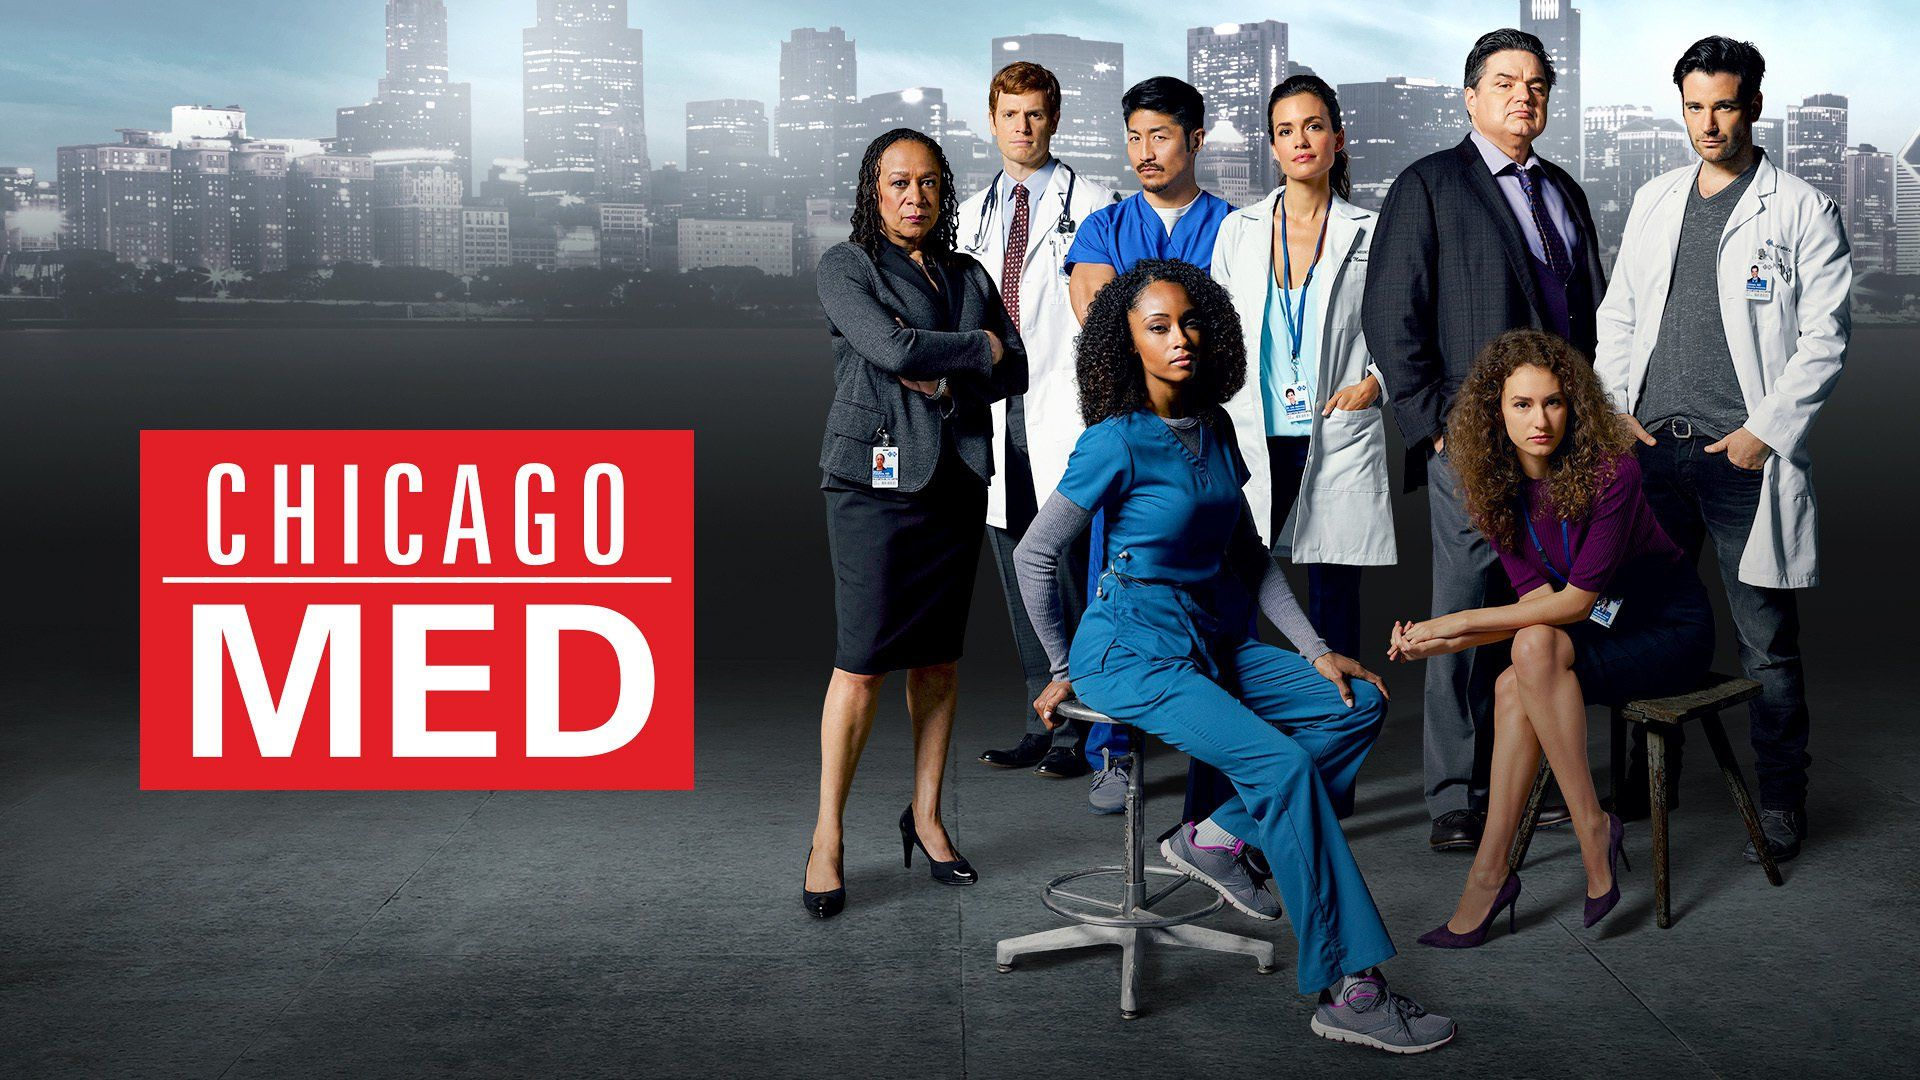 Watch Chicago Med Season 1 Episode 1 The Green Branch Online Free Hd 2015 Chicago Med Chicago Medical Drama